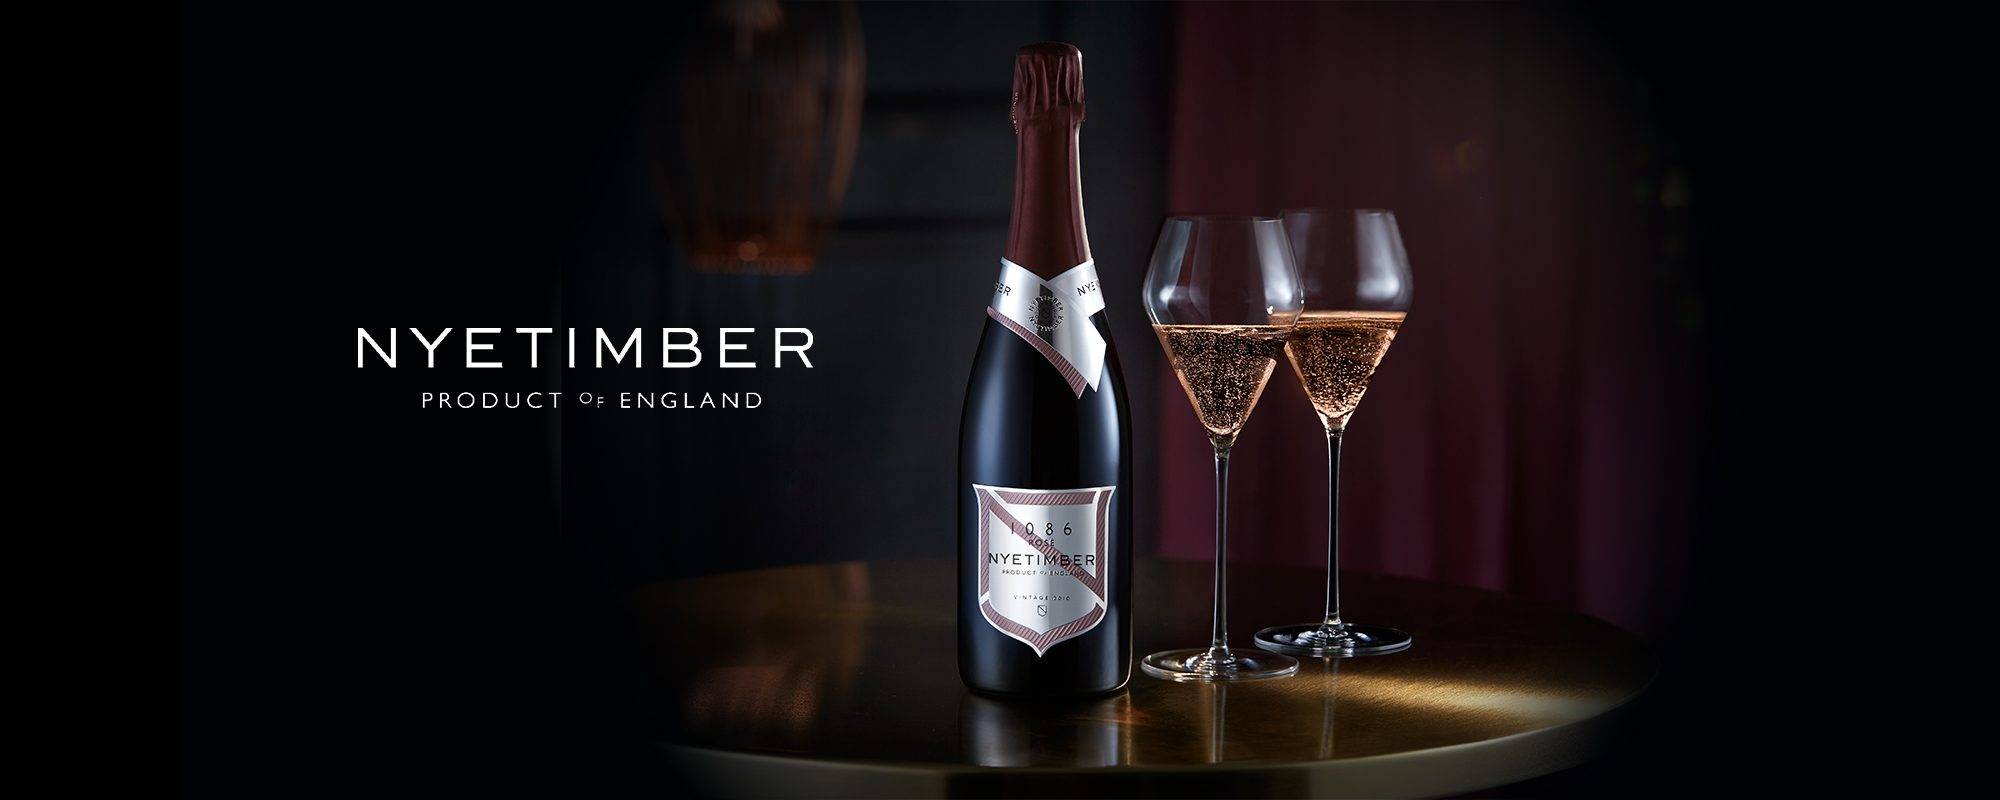 Nyetimber Dinner - Searcys at the Gherkin